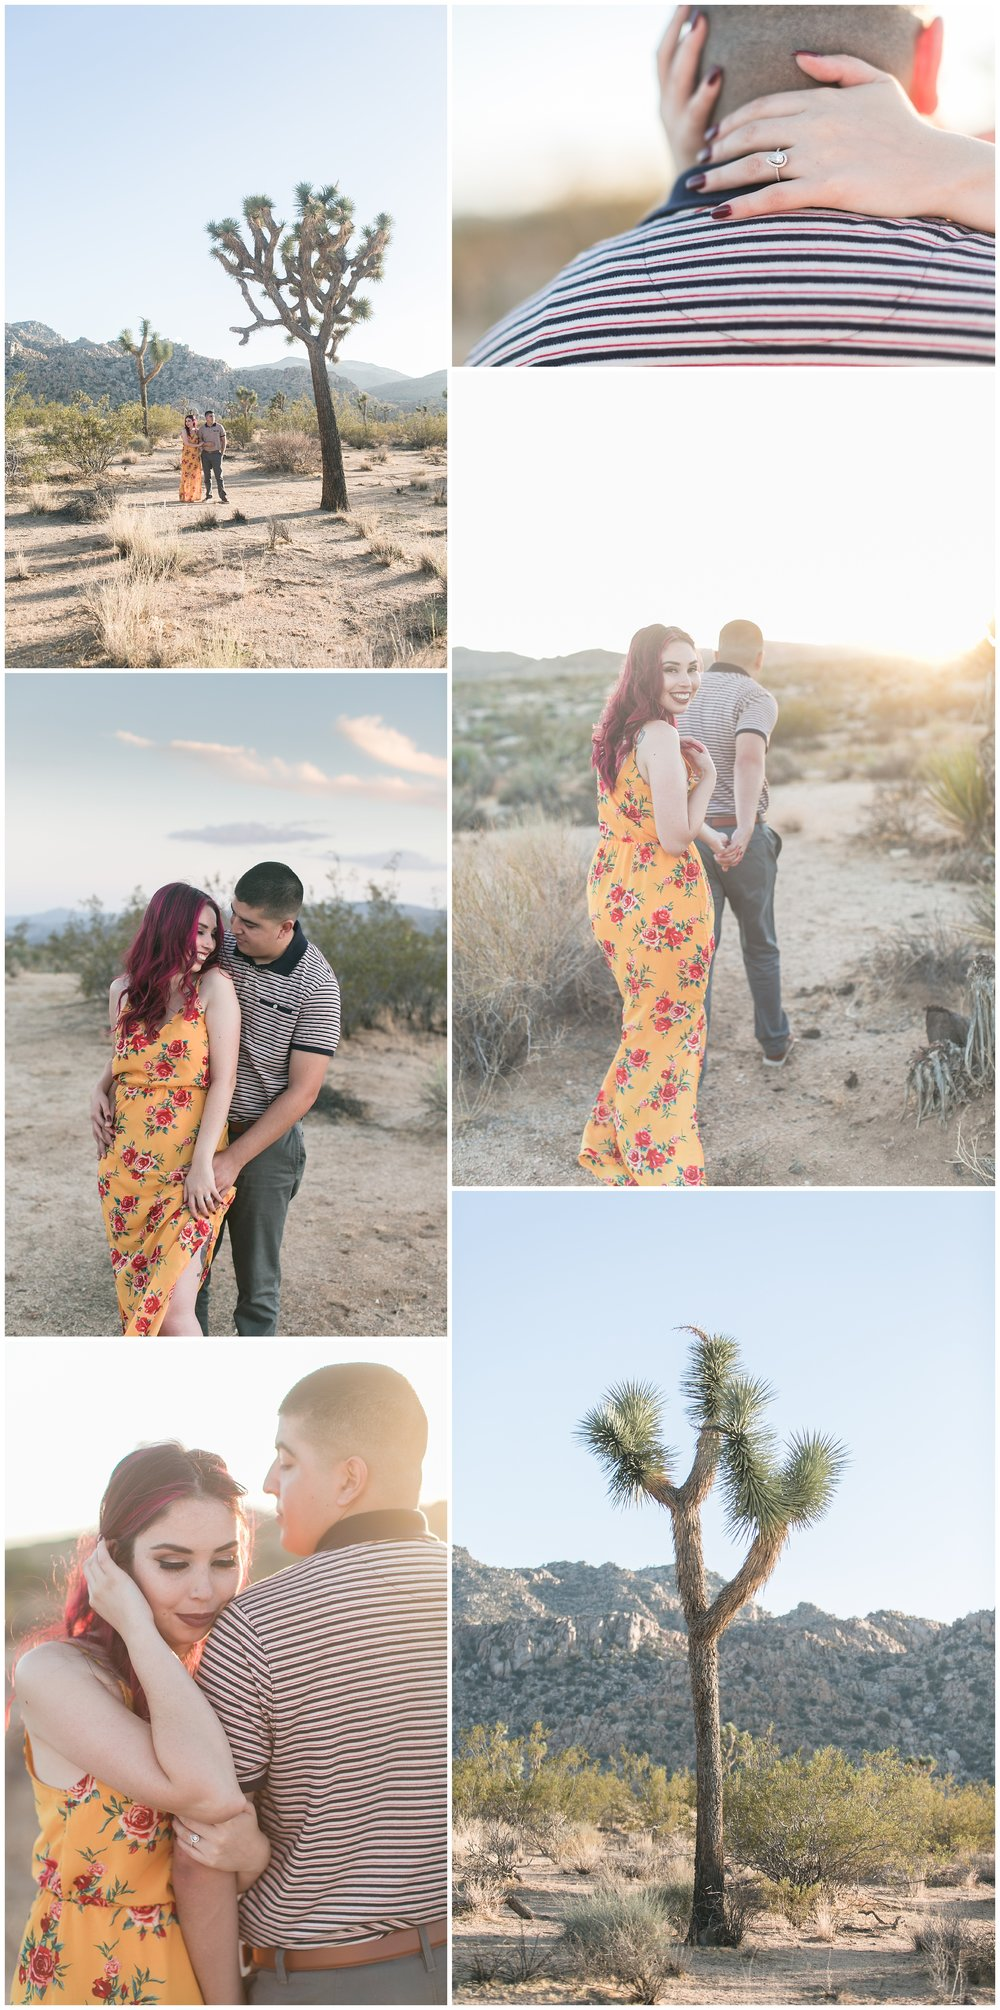 Joshua Tree engagement photos | Joshua Tree engagement session carrie vines